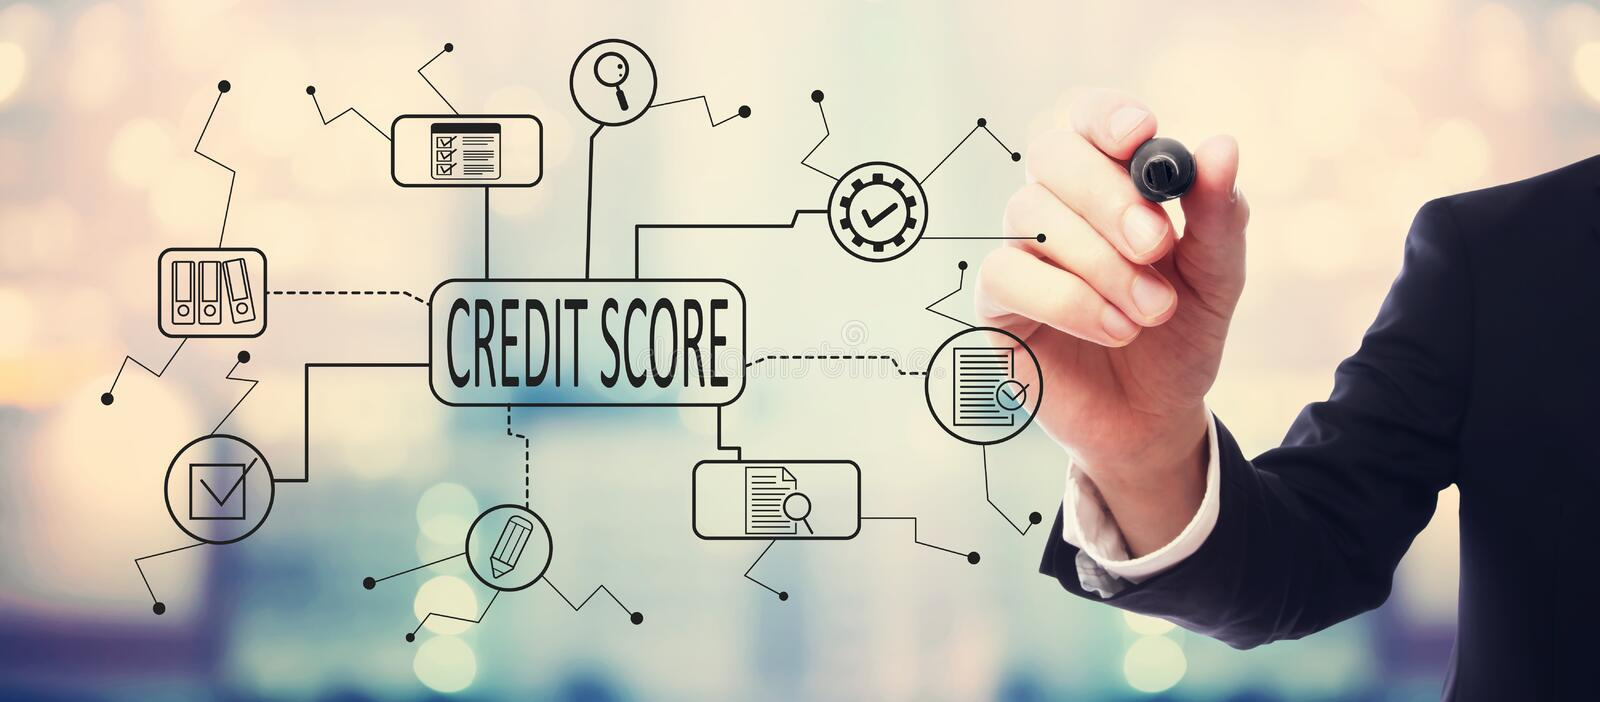 Credit score theme with businessman vector illustration